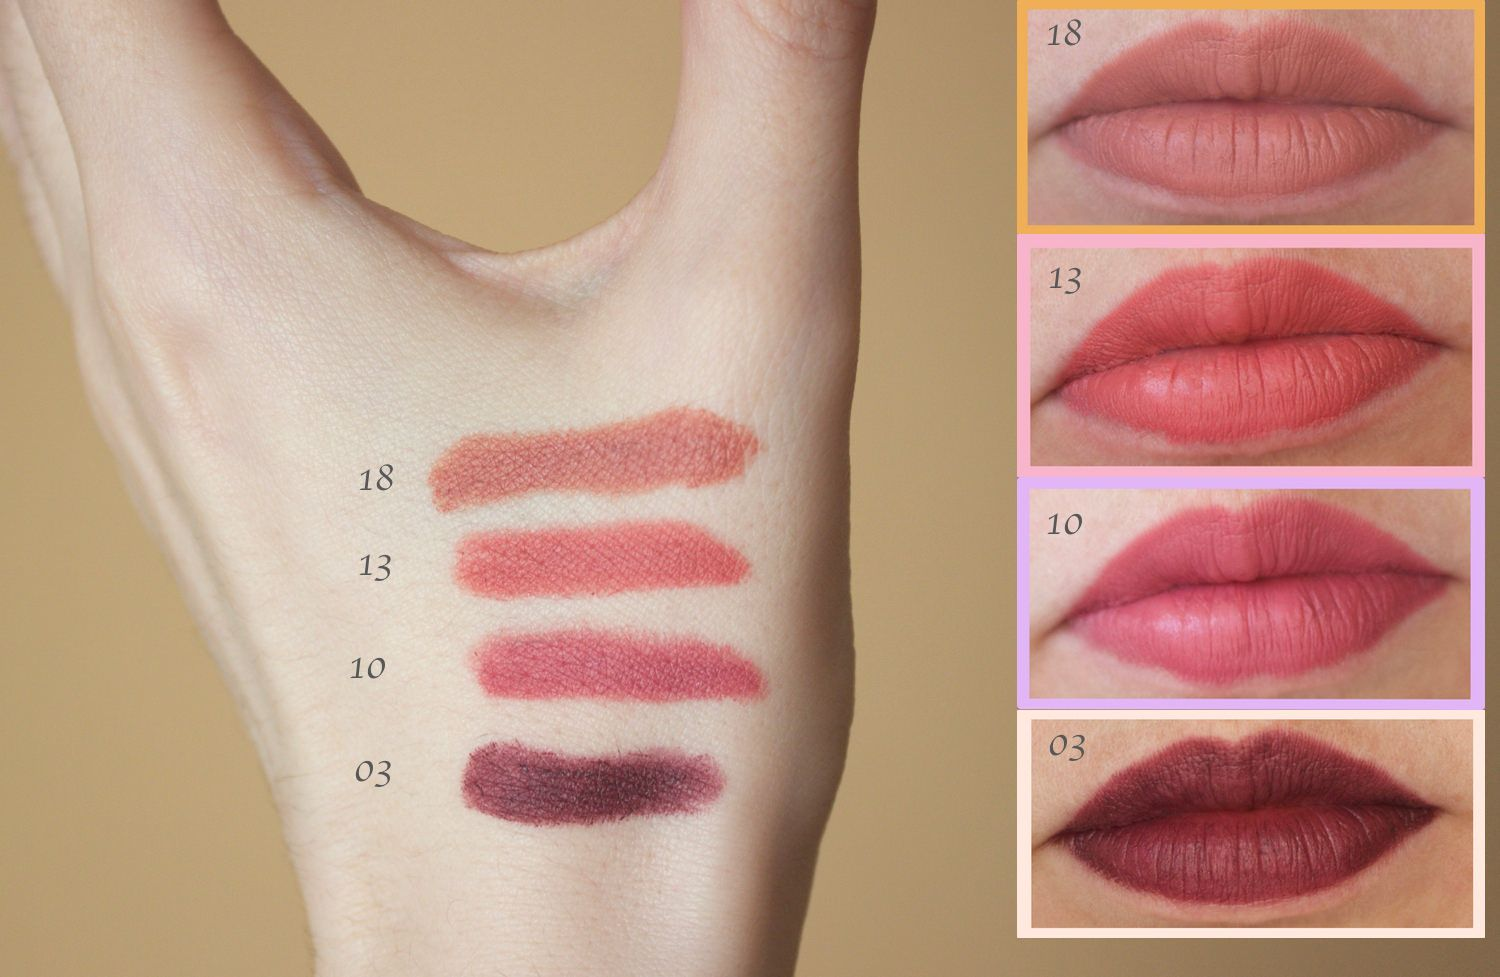 Golden Rose Matte Lipstick Crayons In The Shades 03 10 13 And 18